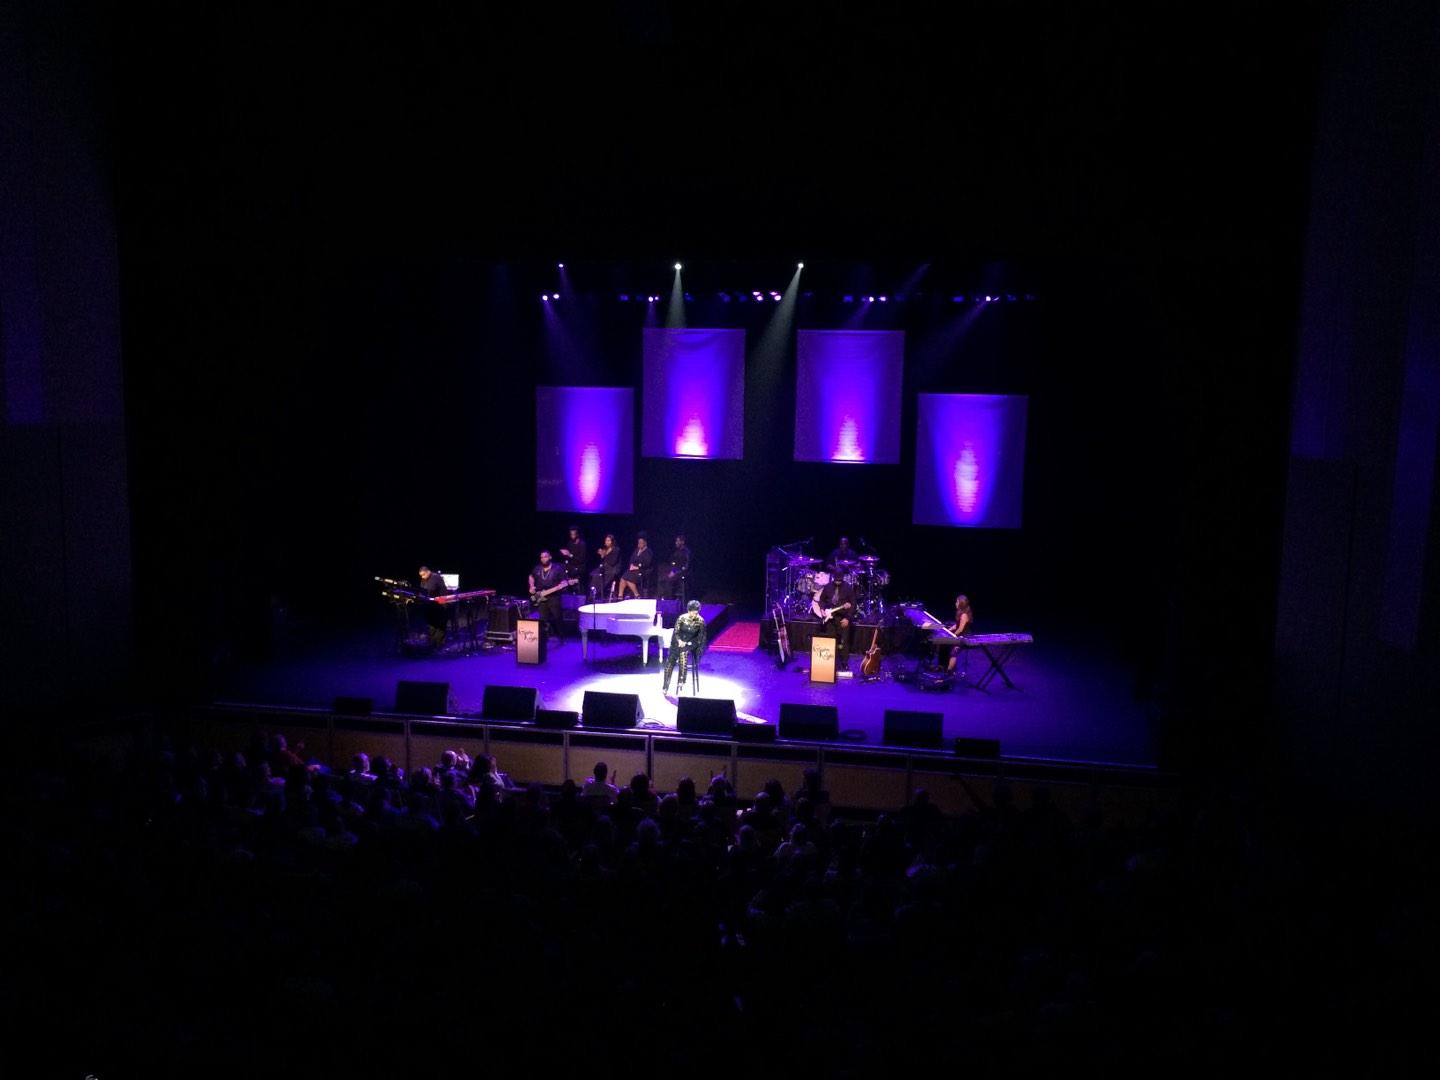 King Center for the Performing Arts Section Grand Tier Row AA Seat 21